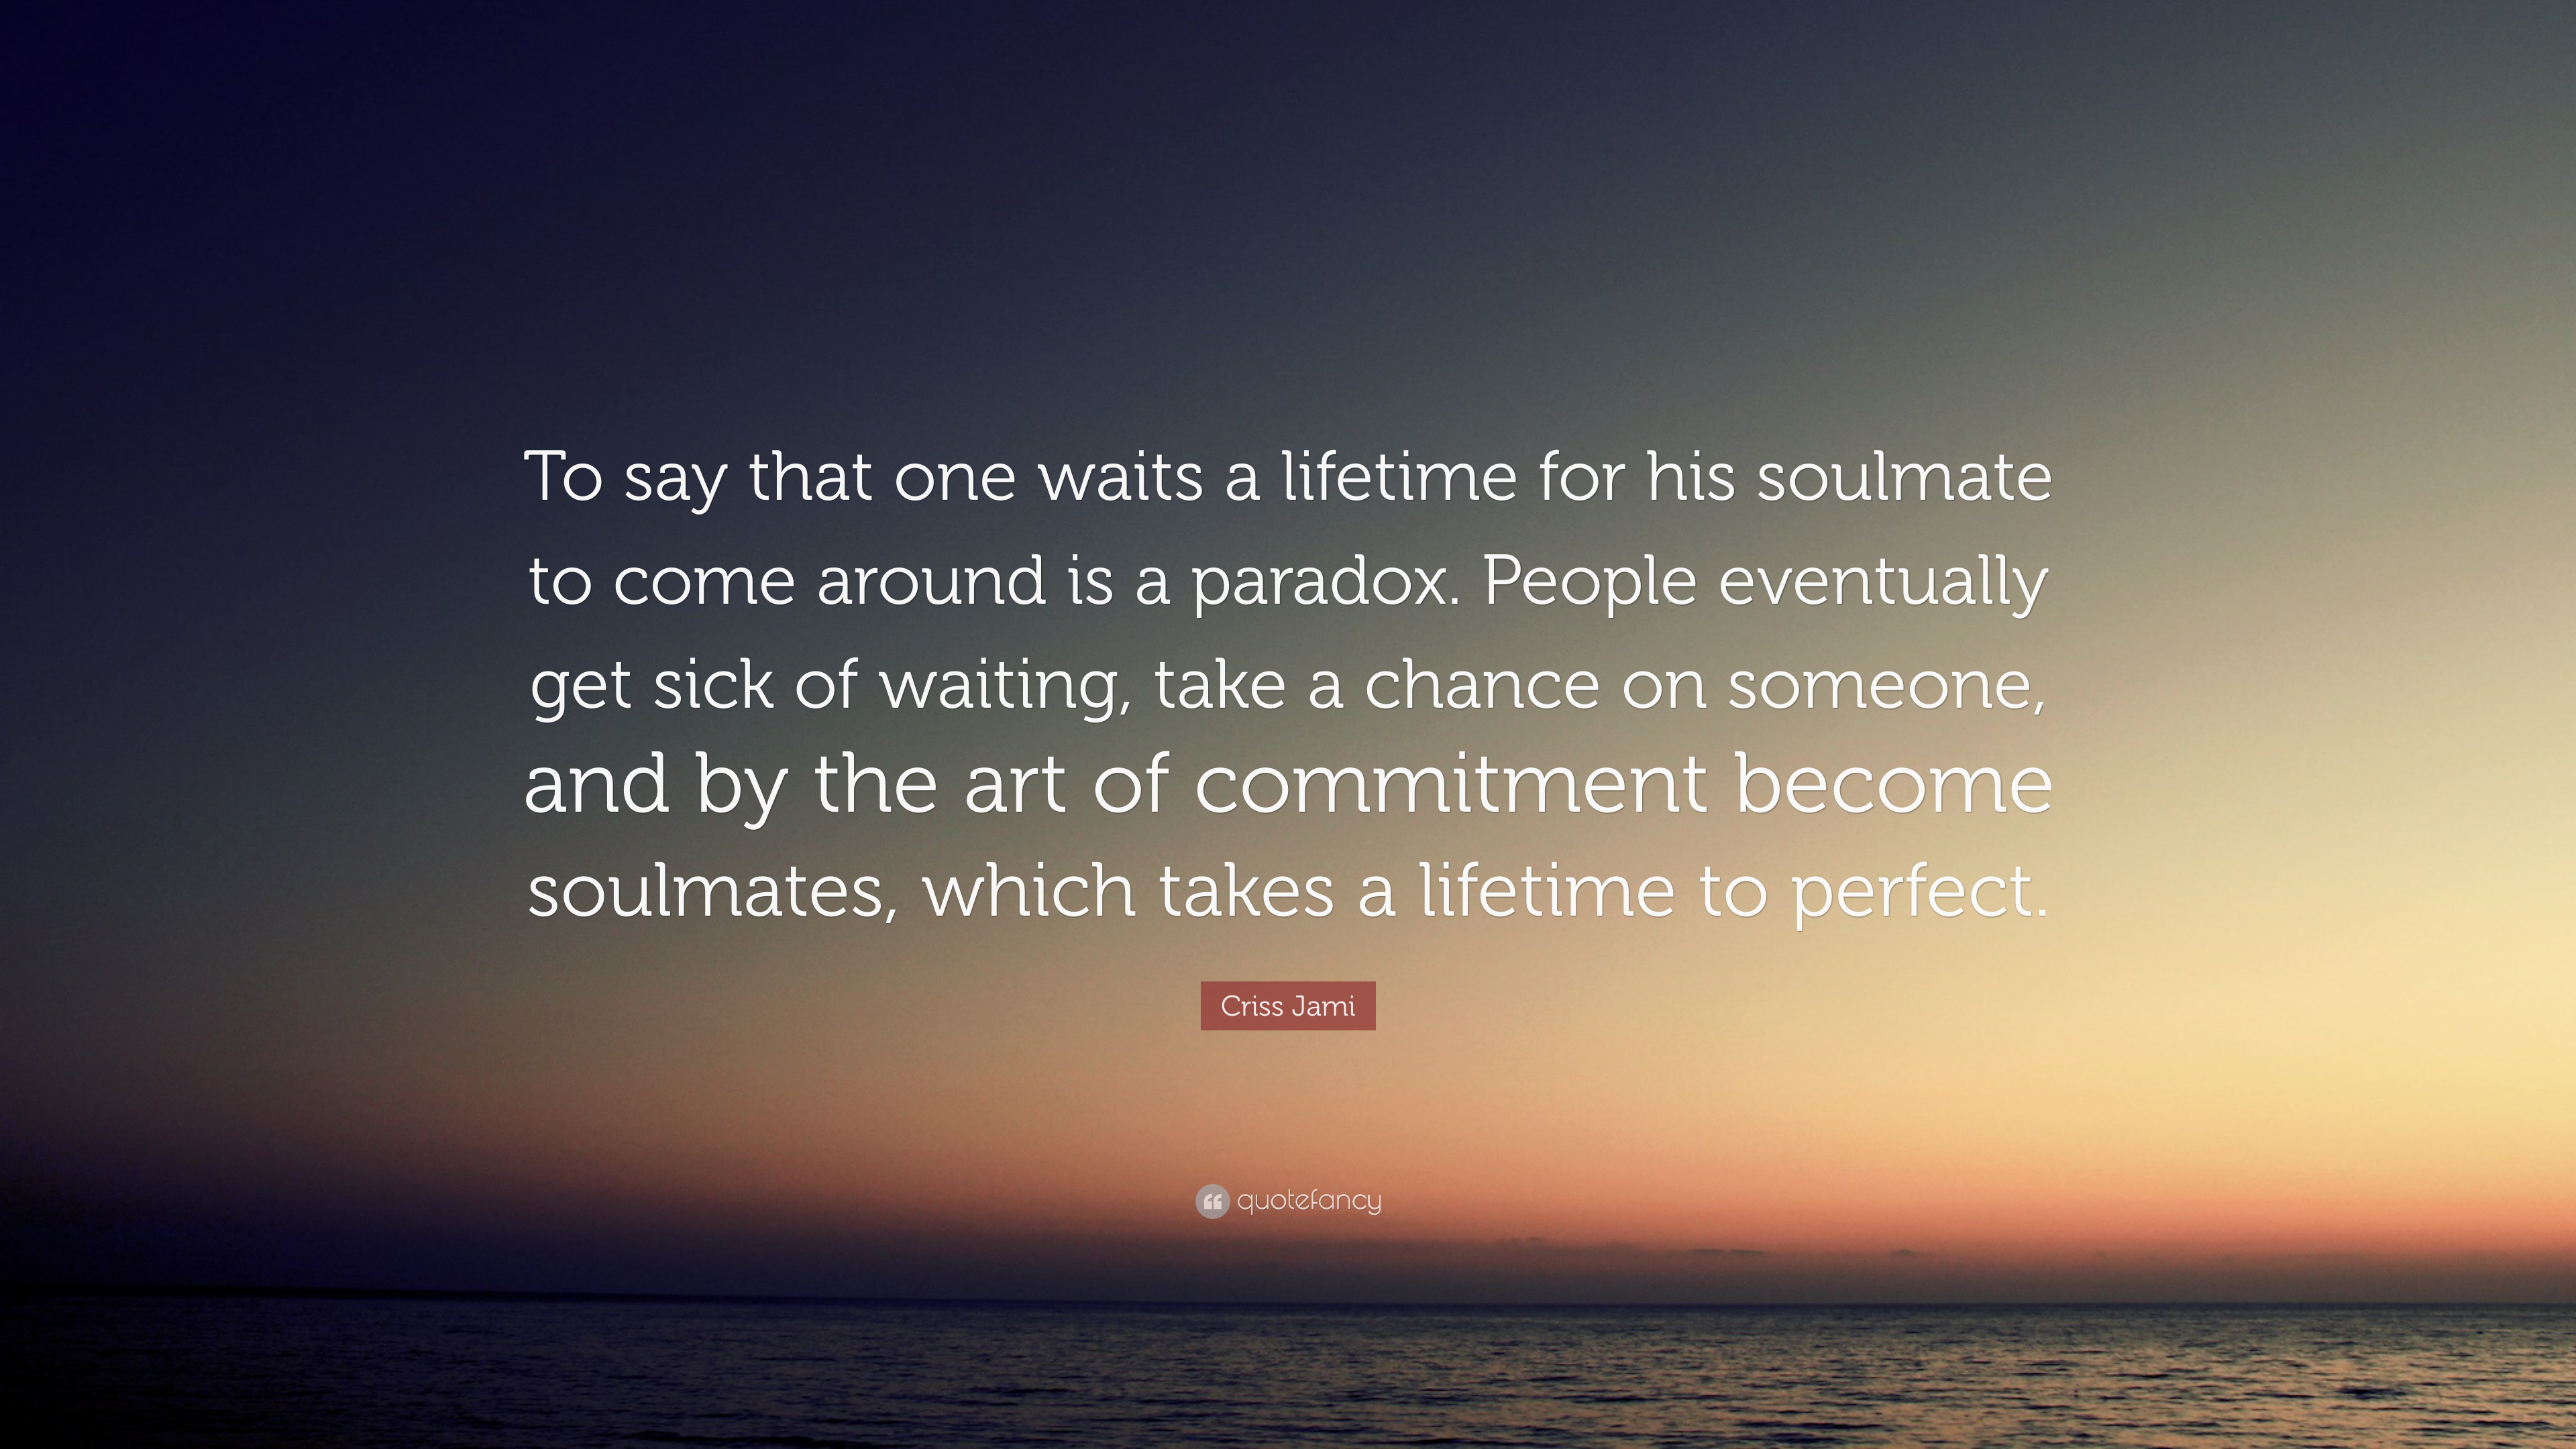 """Soulmate Quotes Criss Jami Quote: """"To say that one waits a lifetime for his  Soulmate Quotes"""